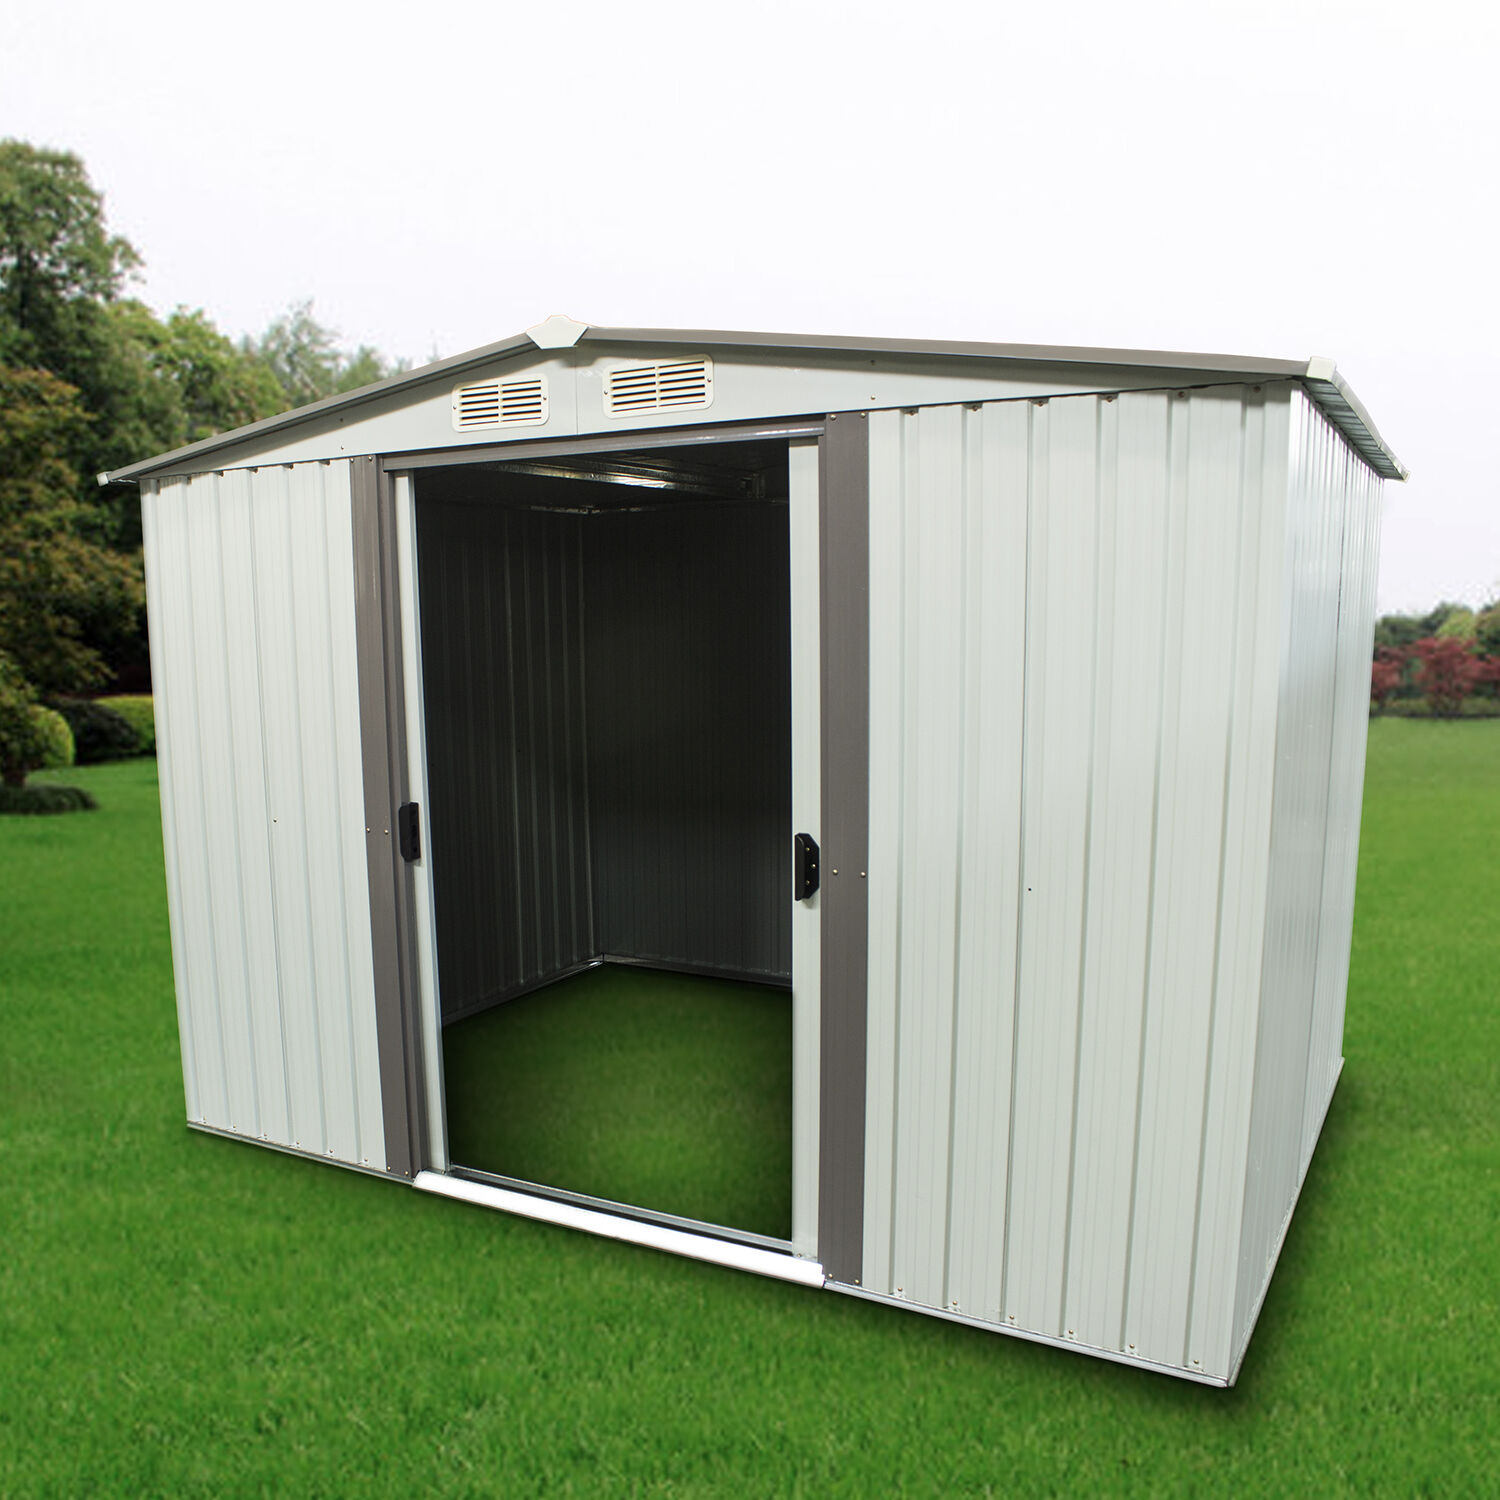 Outdoor storage shed steel garden utility tool backyard for Utility storage shed